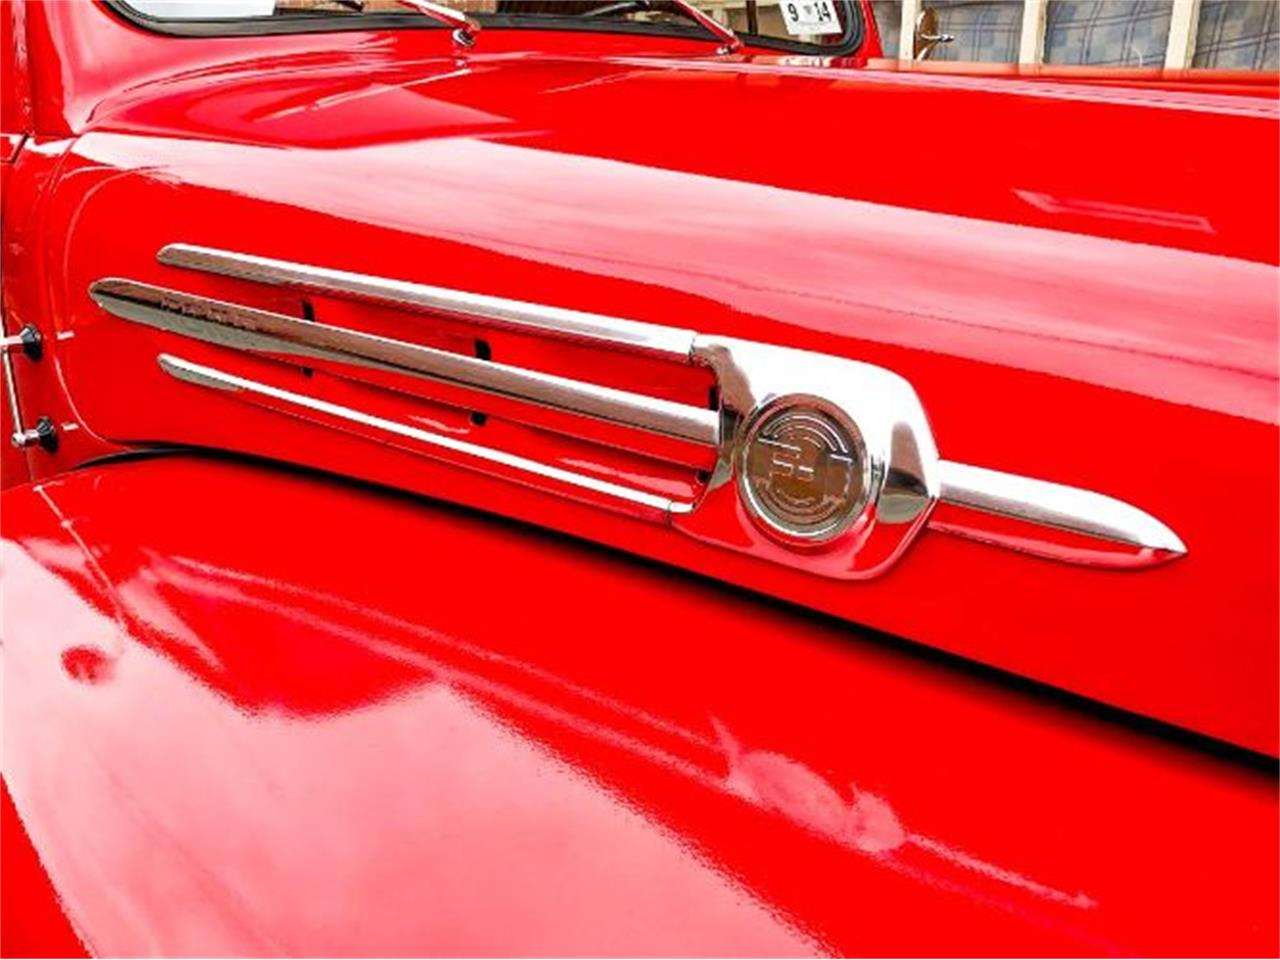 Large Picture of '52 Ford F1 located in Michigan - $40,895.00 Offered by Classic Car Deals - QRHE